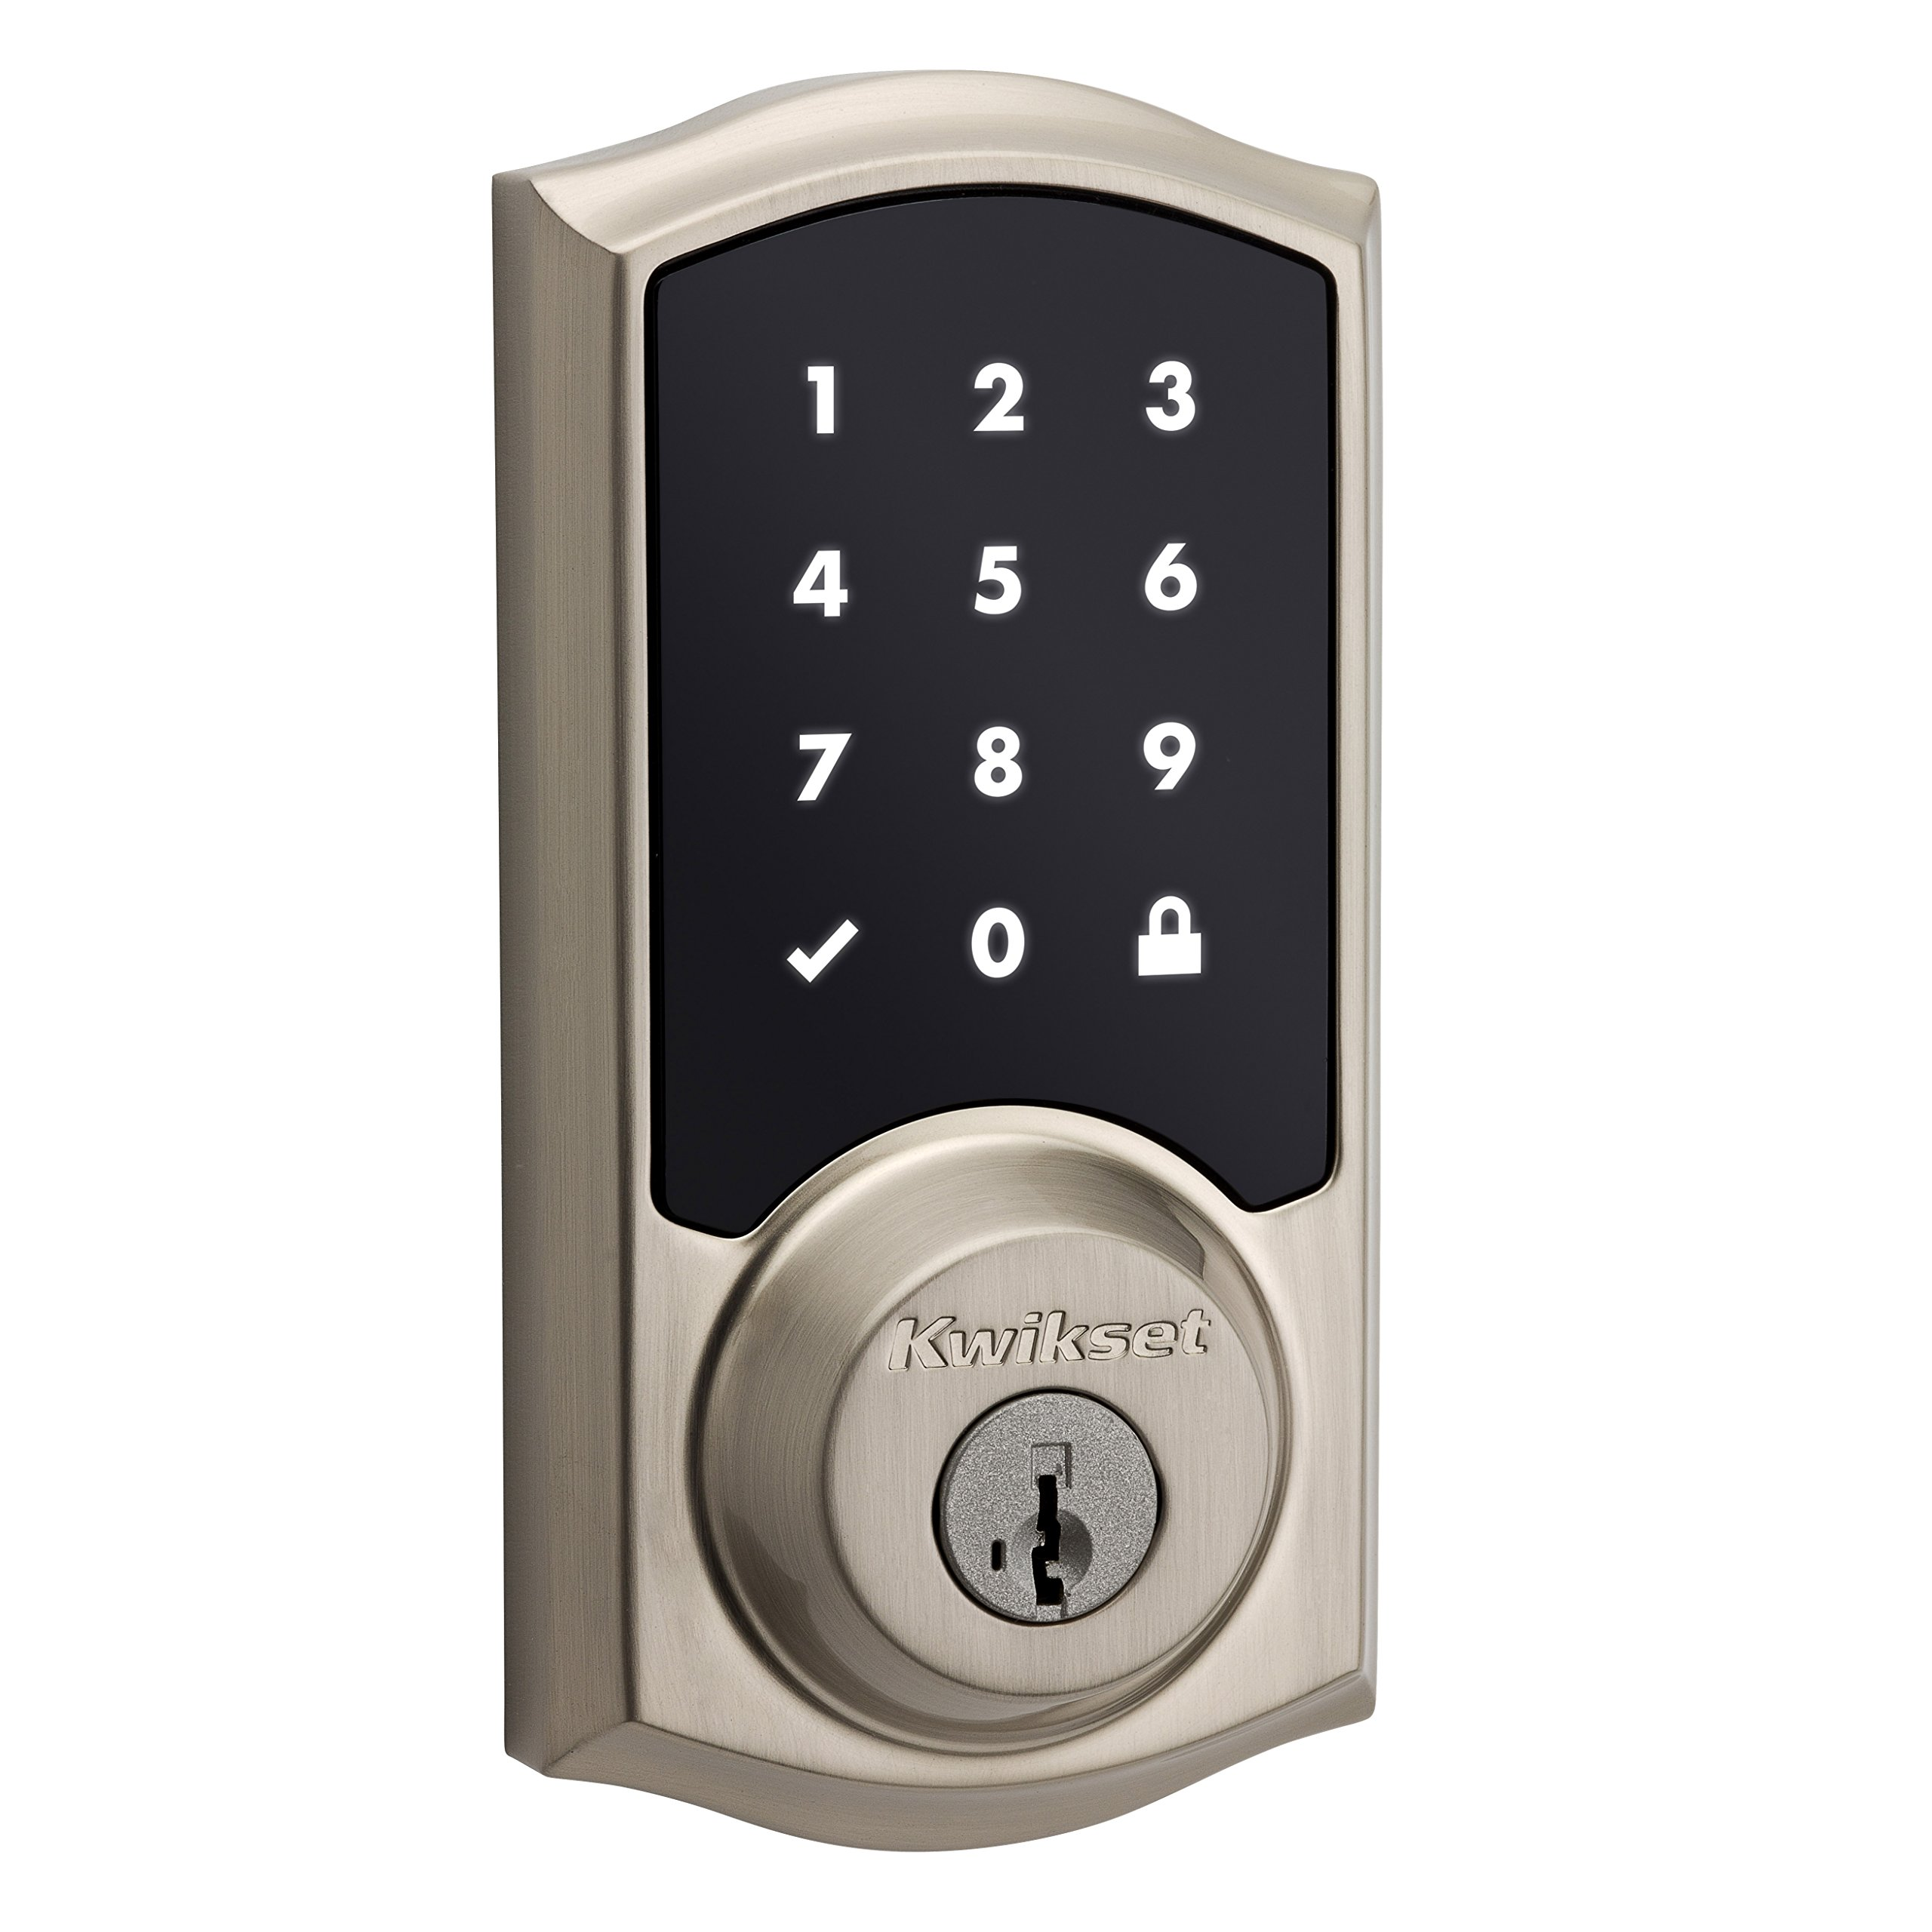 Kwikset 99160-008 SmartCode ZigBee Touchscreen Smart Lock works with Echo Plus & Alexa, featuring SmartKey, Satin Nickel by Kwikset (Image #1)